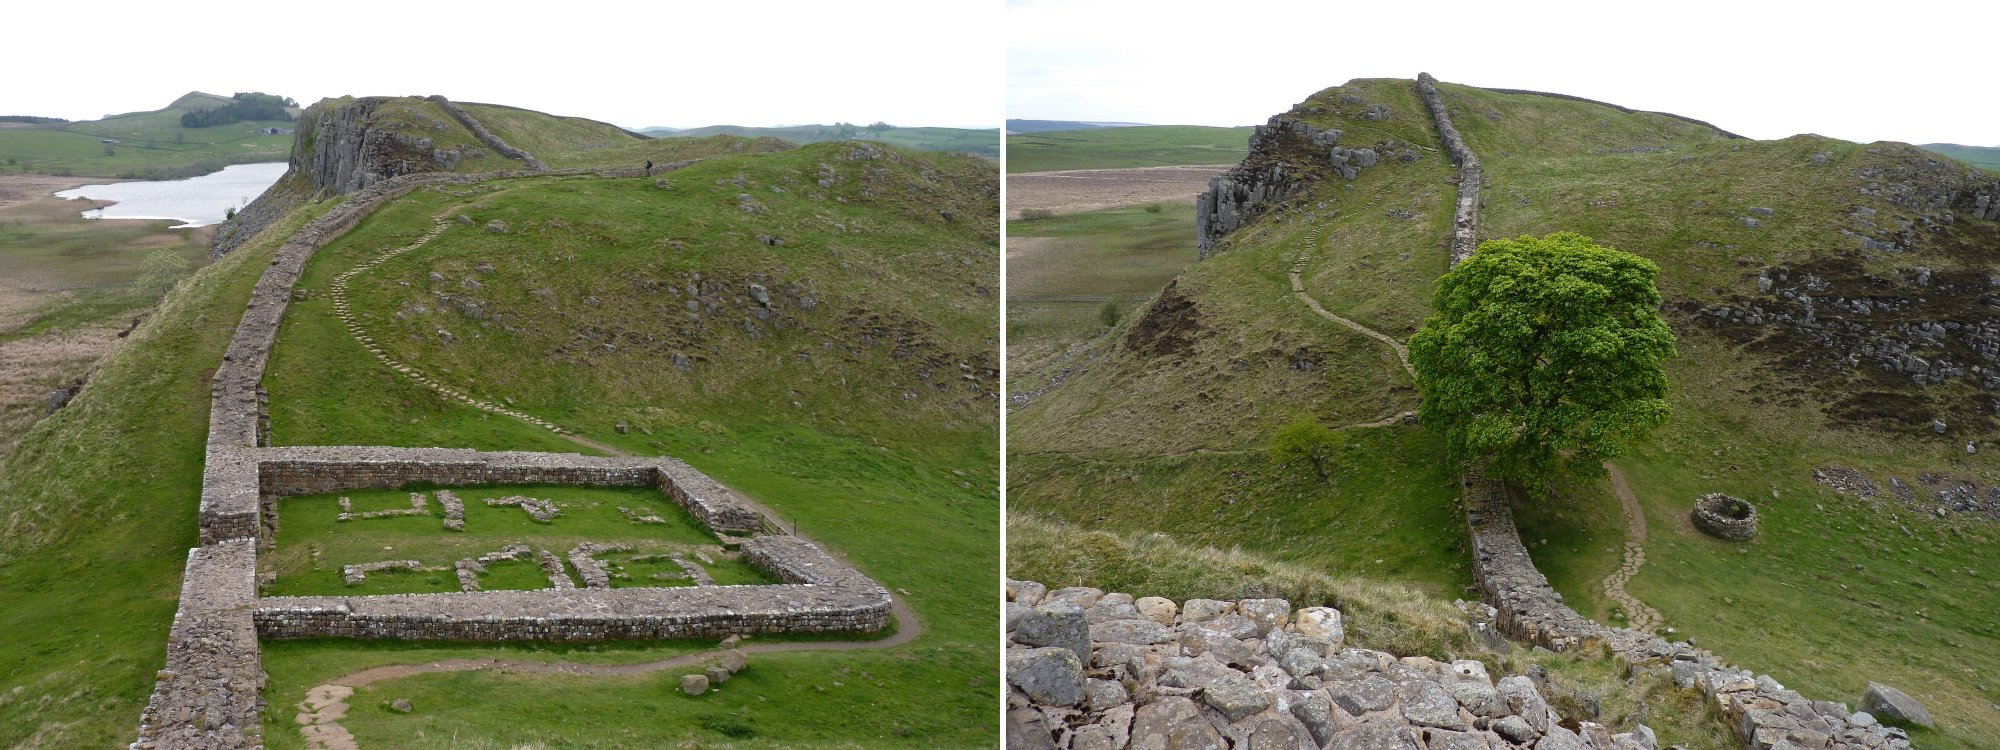 Left to Right: Milecastle 39, An unconventional view of Sycamore Gap